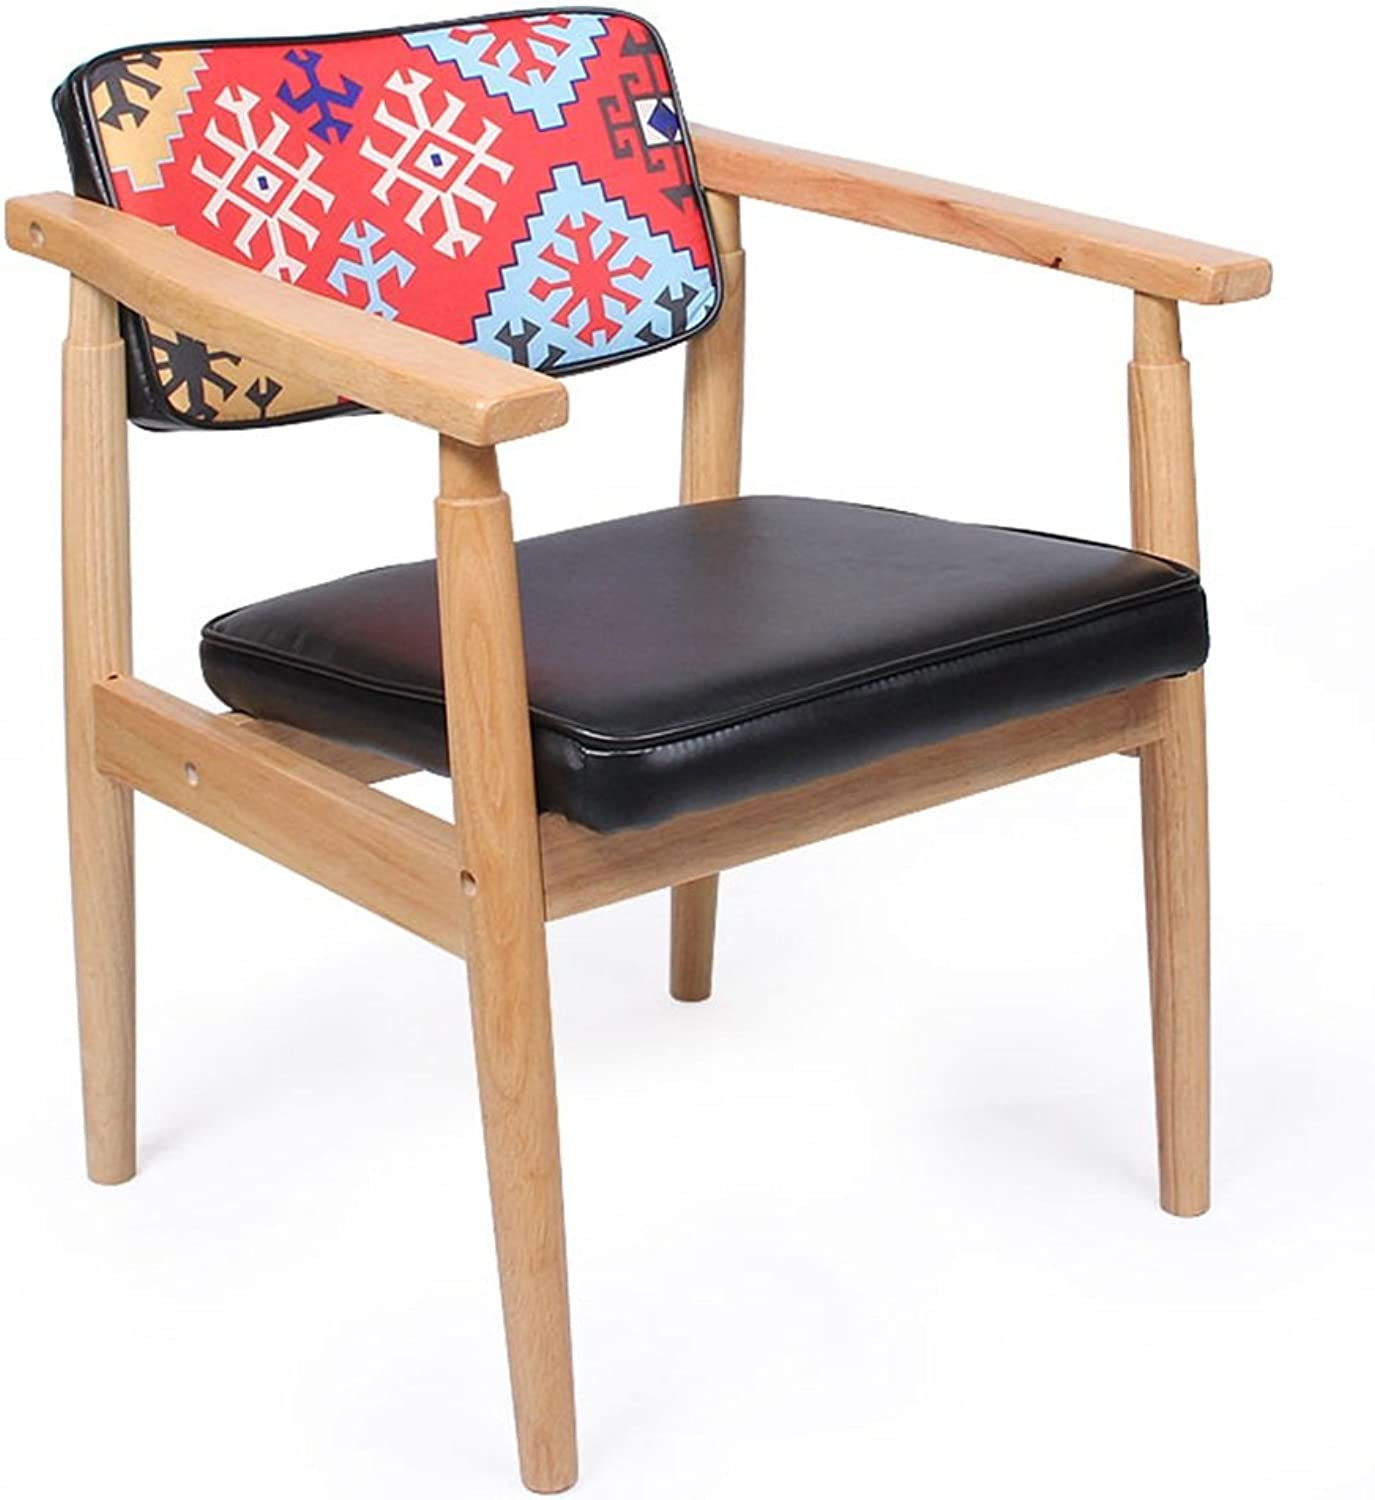 LIQICAI Wooden Black Bar Stool with Backrest and Footrest Breakfast Extremely Comfy, 4-Leg Structure, 3 Height Optional (color   2PCS, Size   36x36x90cm)